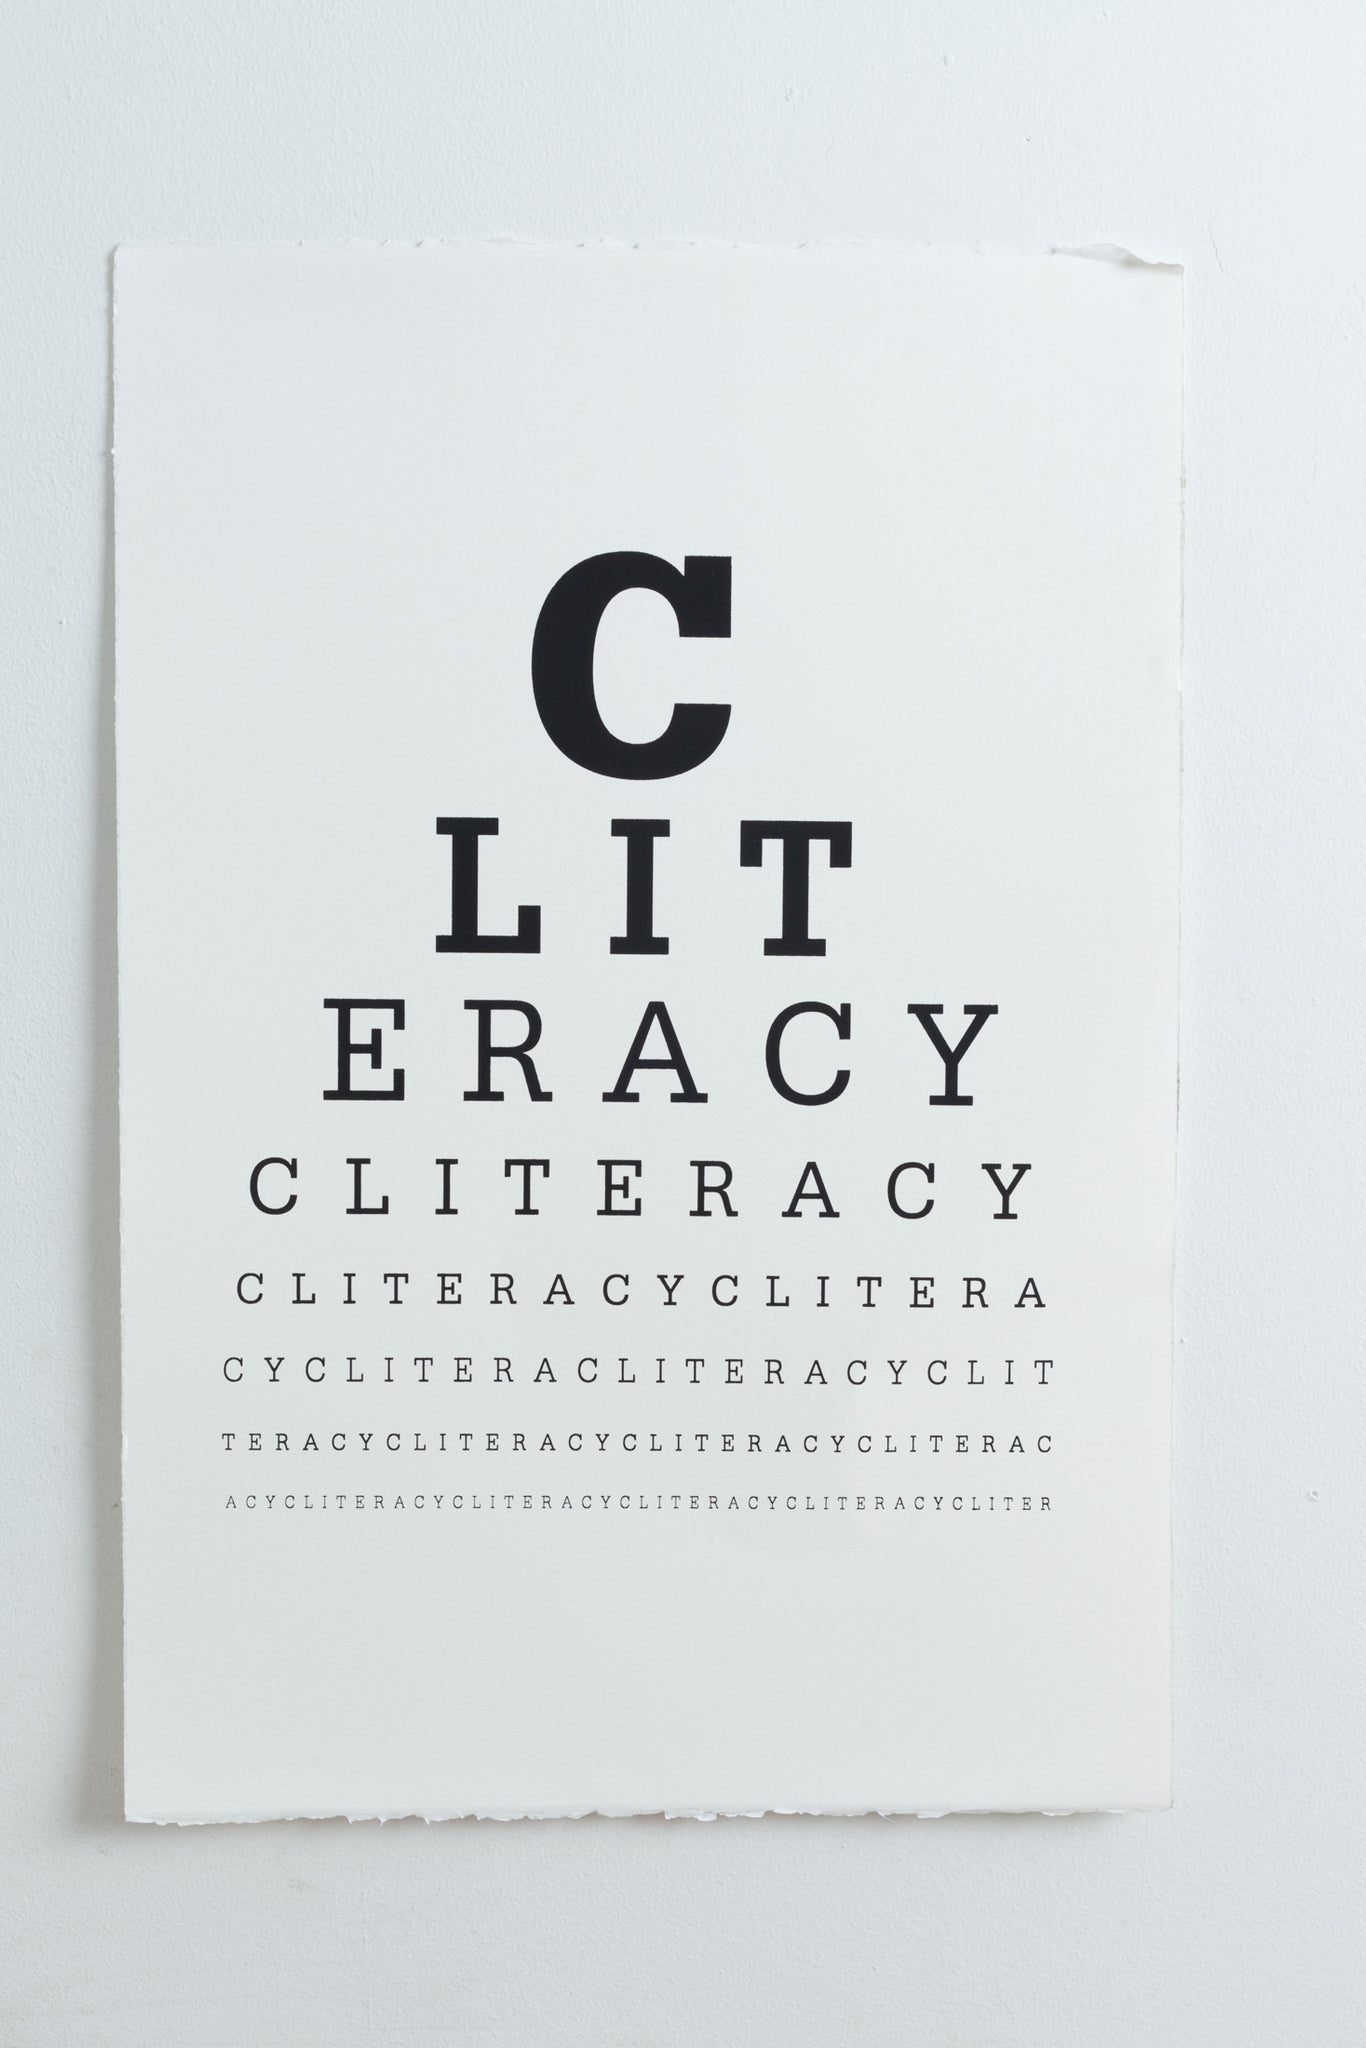 CLITERACY, Eye Chart